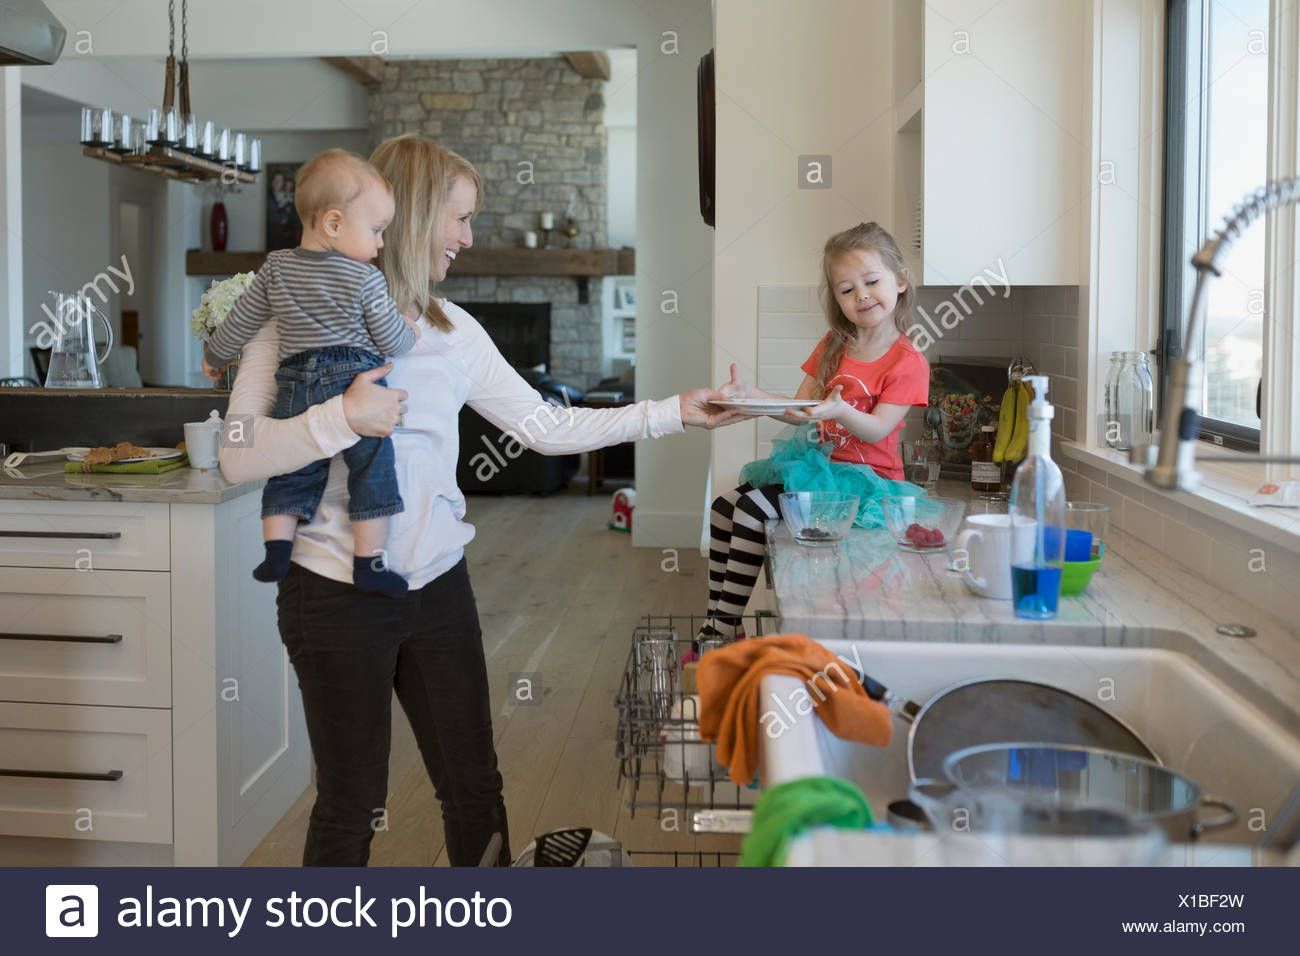 Daughter helping mother do dishes in kitchen - Stock Image